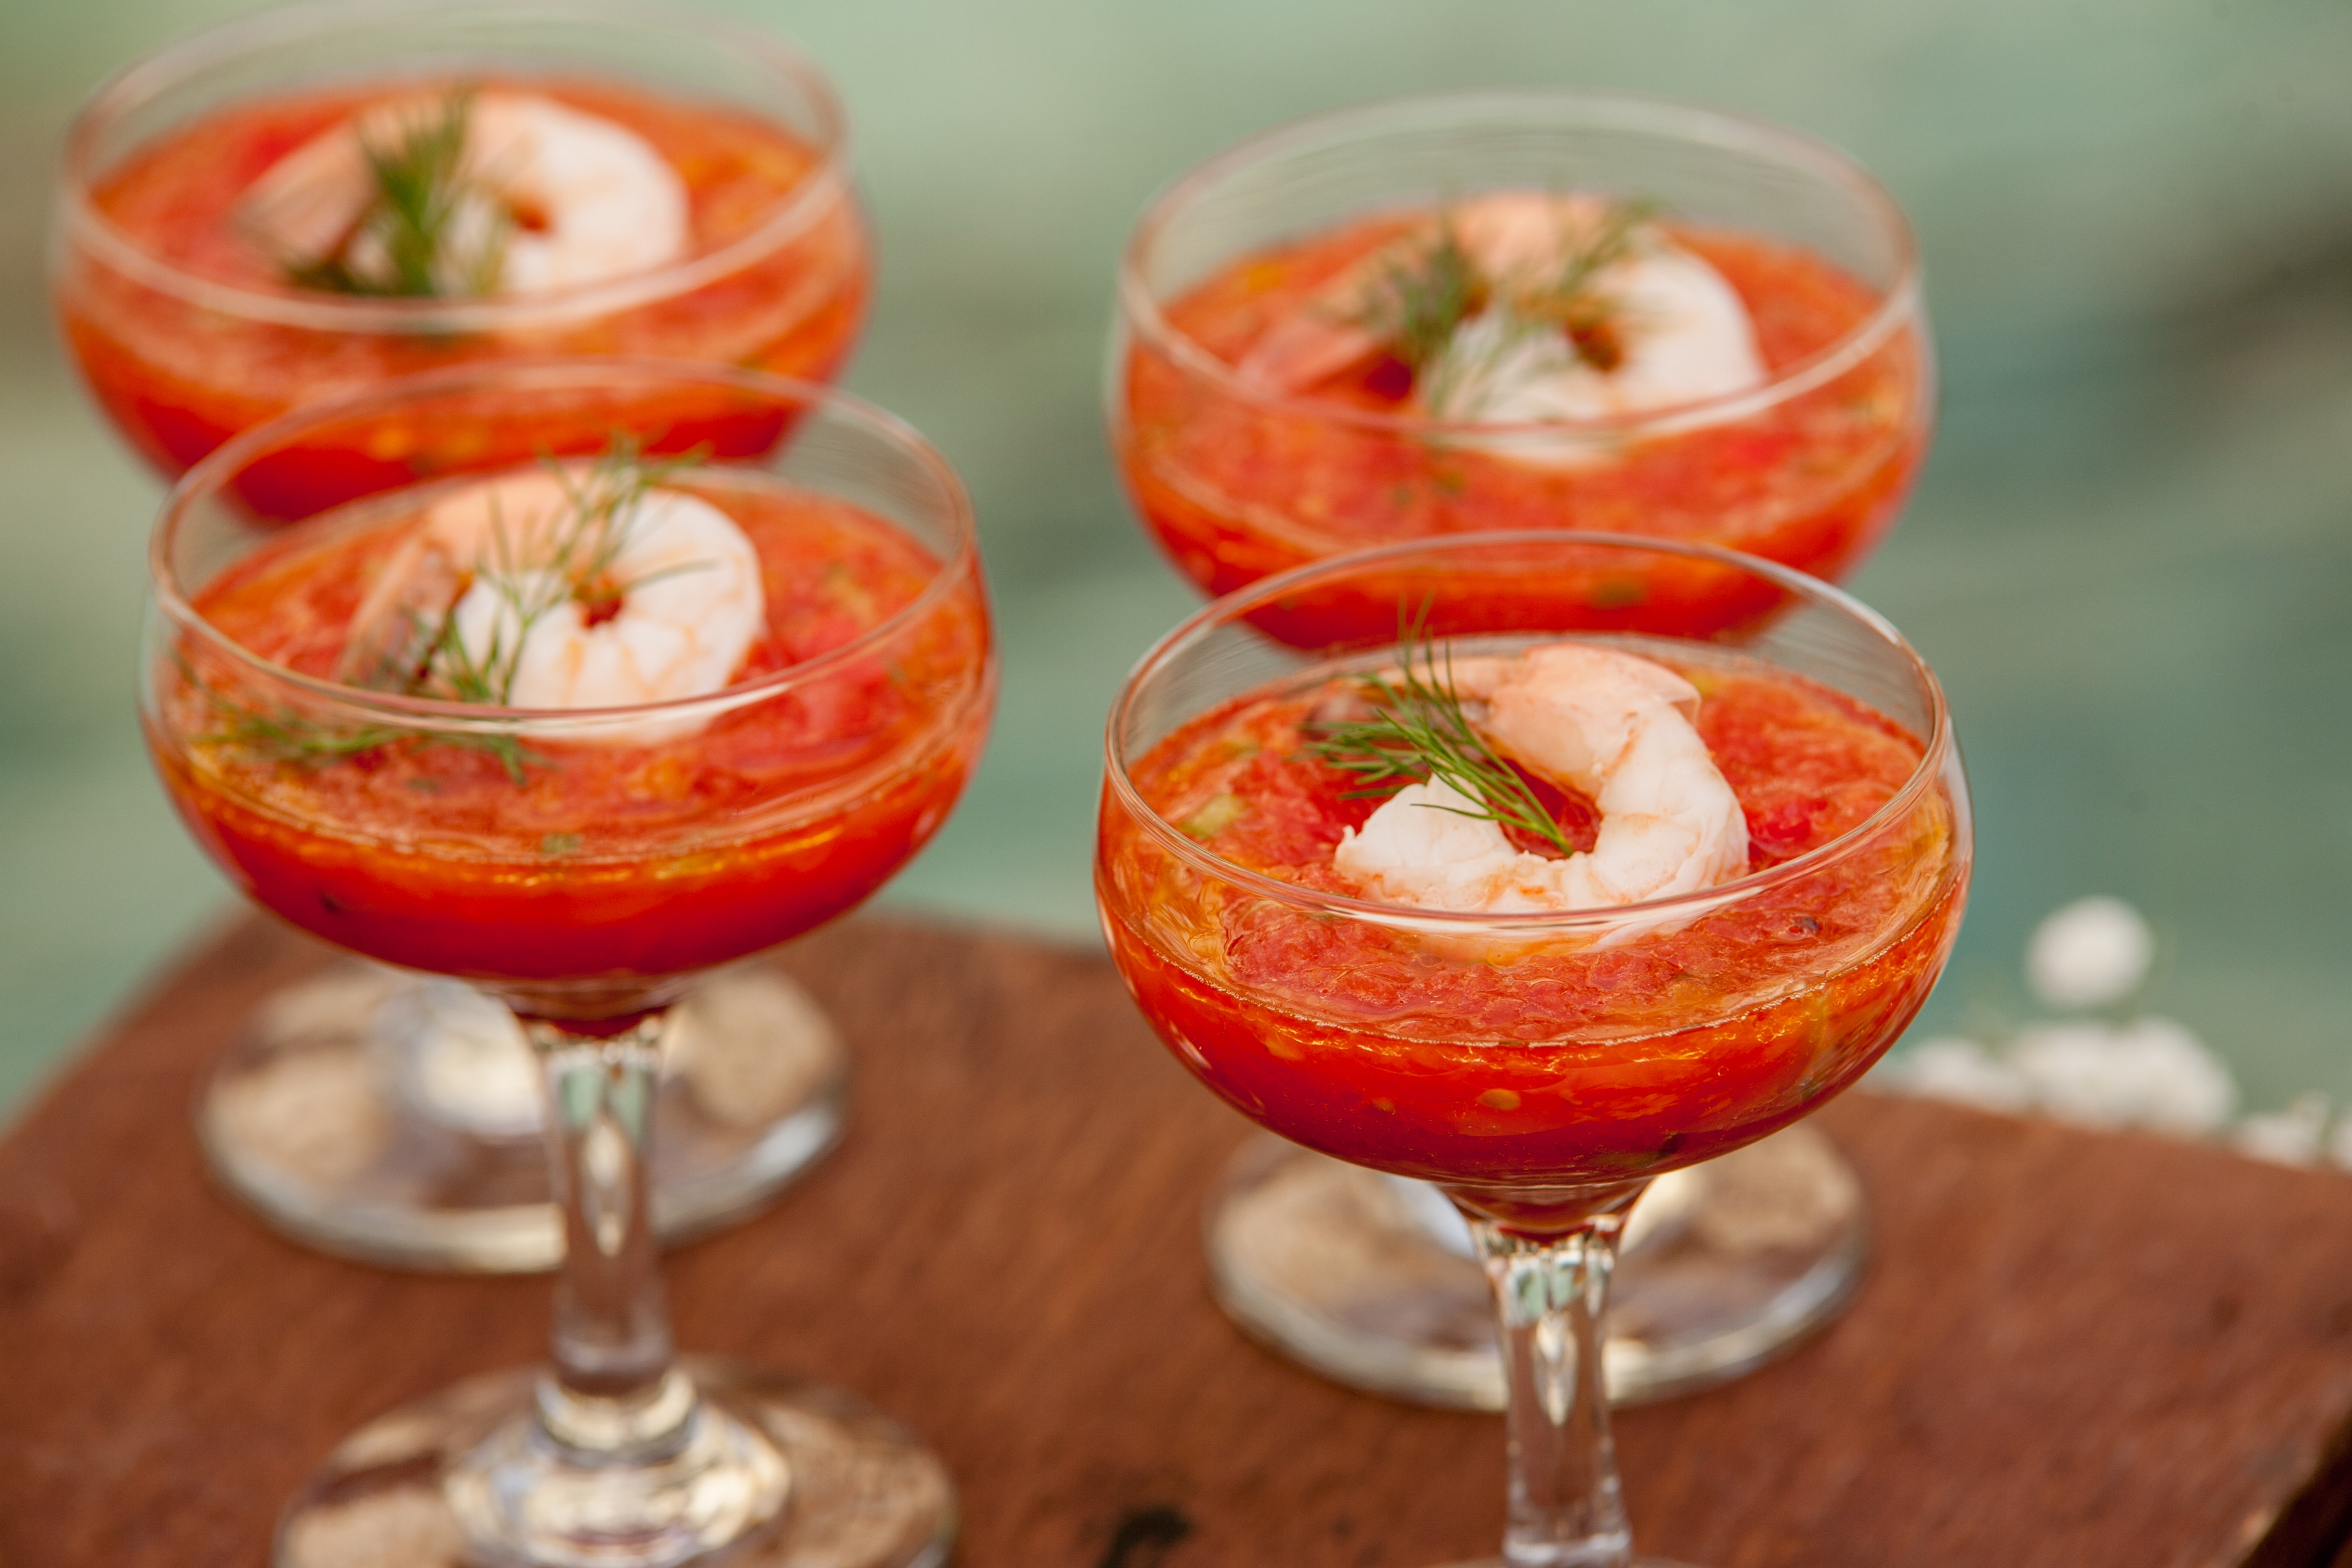 Shrimp cocktails in champagne coupes by Pigeon Catering. Photo: Jessica The Photographer